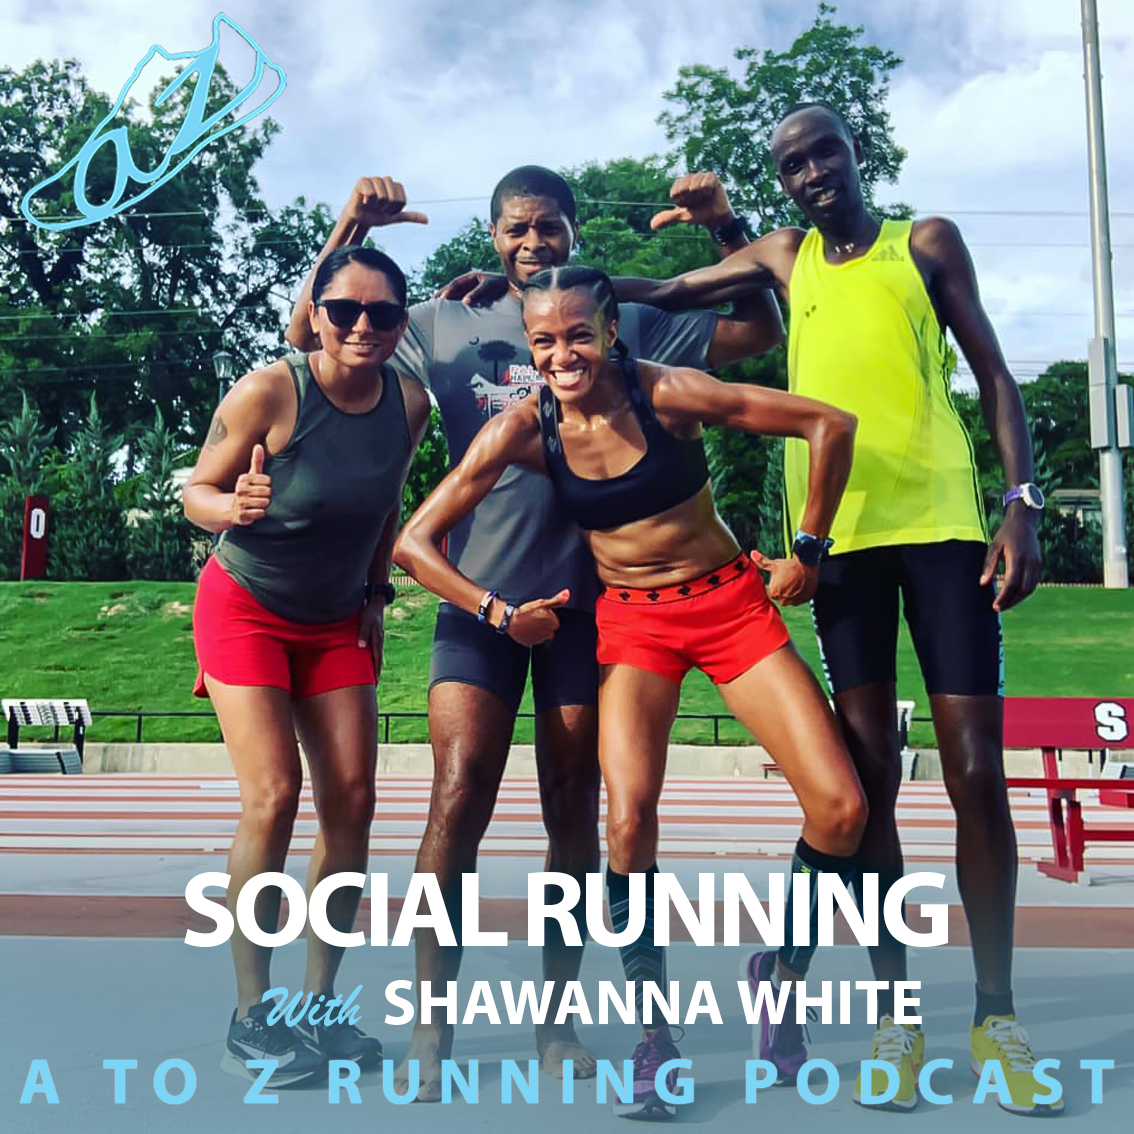 Shawanna White Podast about Social Running